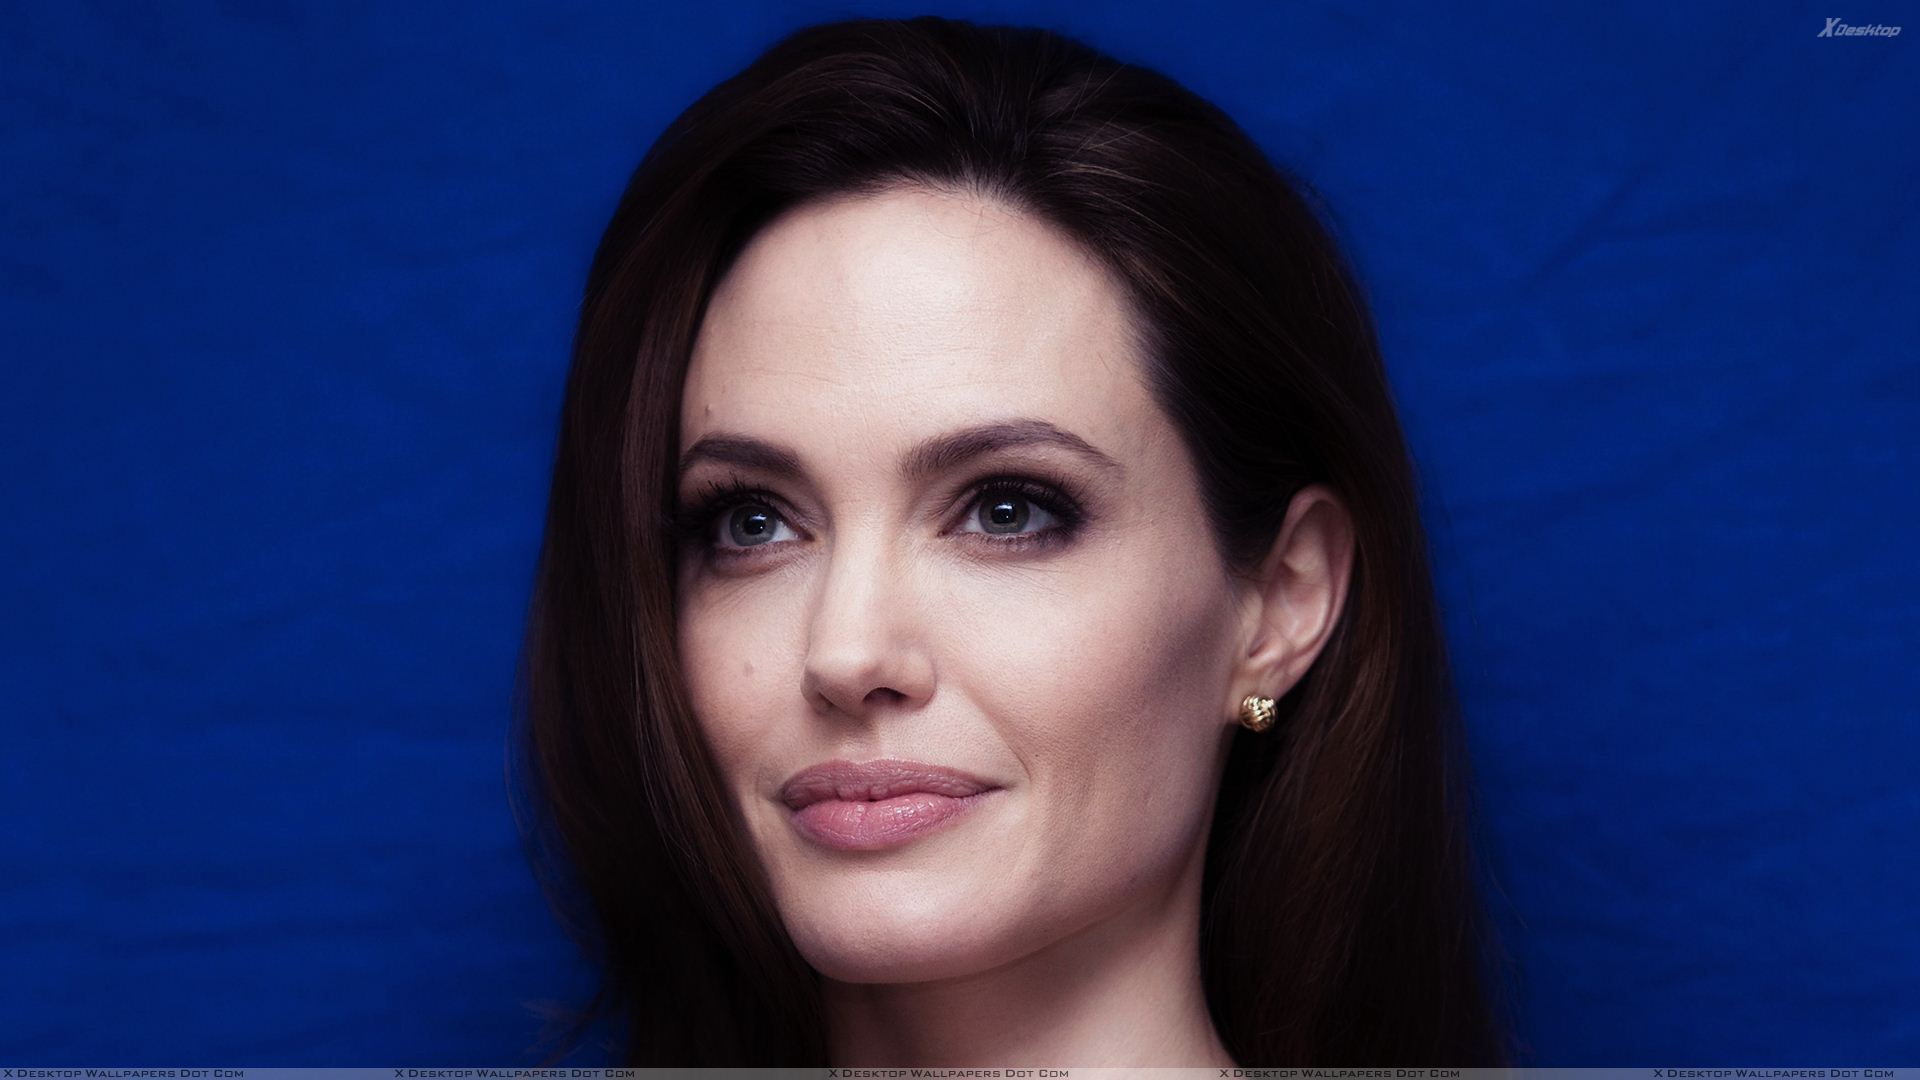 angelina jolie wallpapers photos images in hd